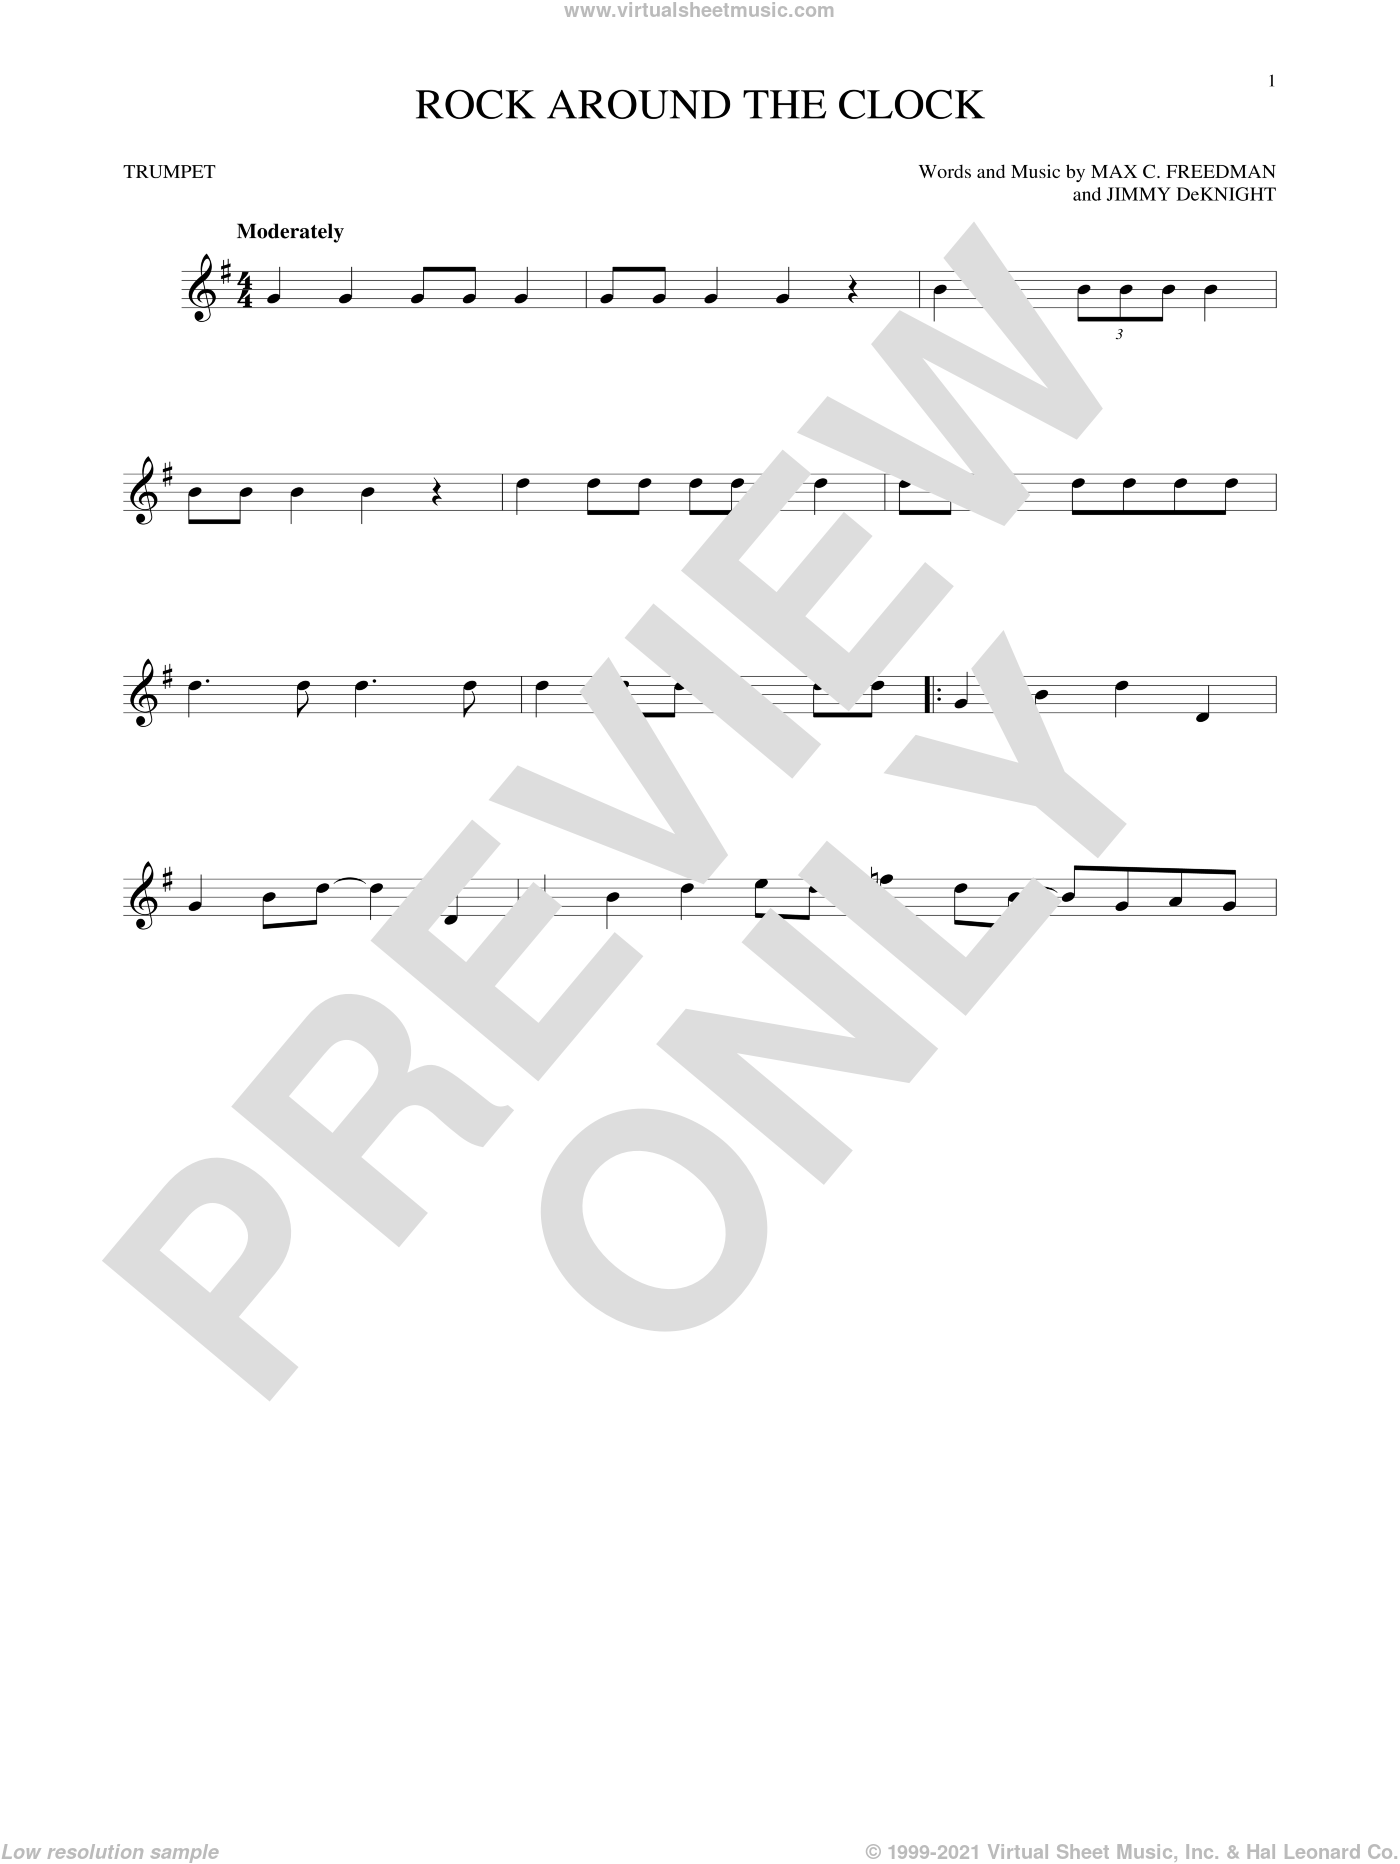 Rock Around The Clock sheet music for trumpet solo by Bill Haley & His Comets, Jimmy DeKnight and Max C. Freedman, intermediate skill level